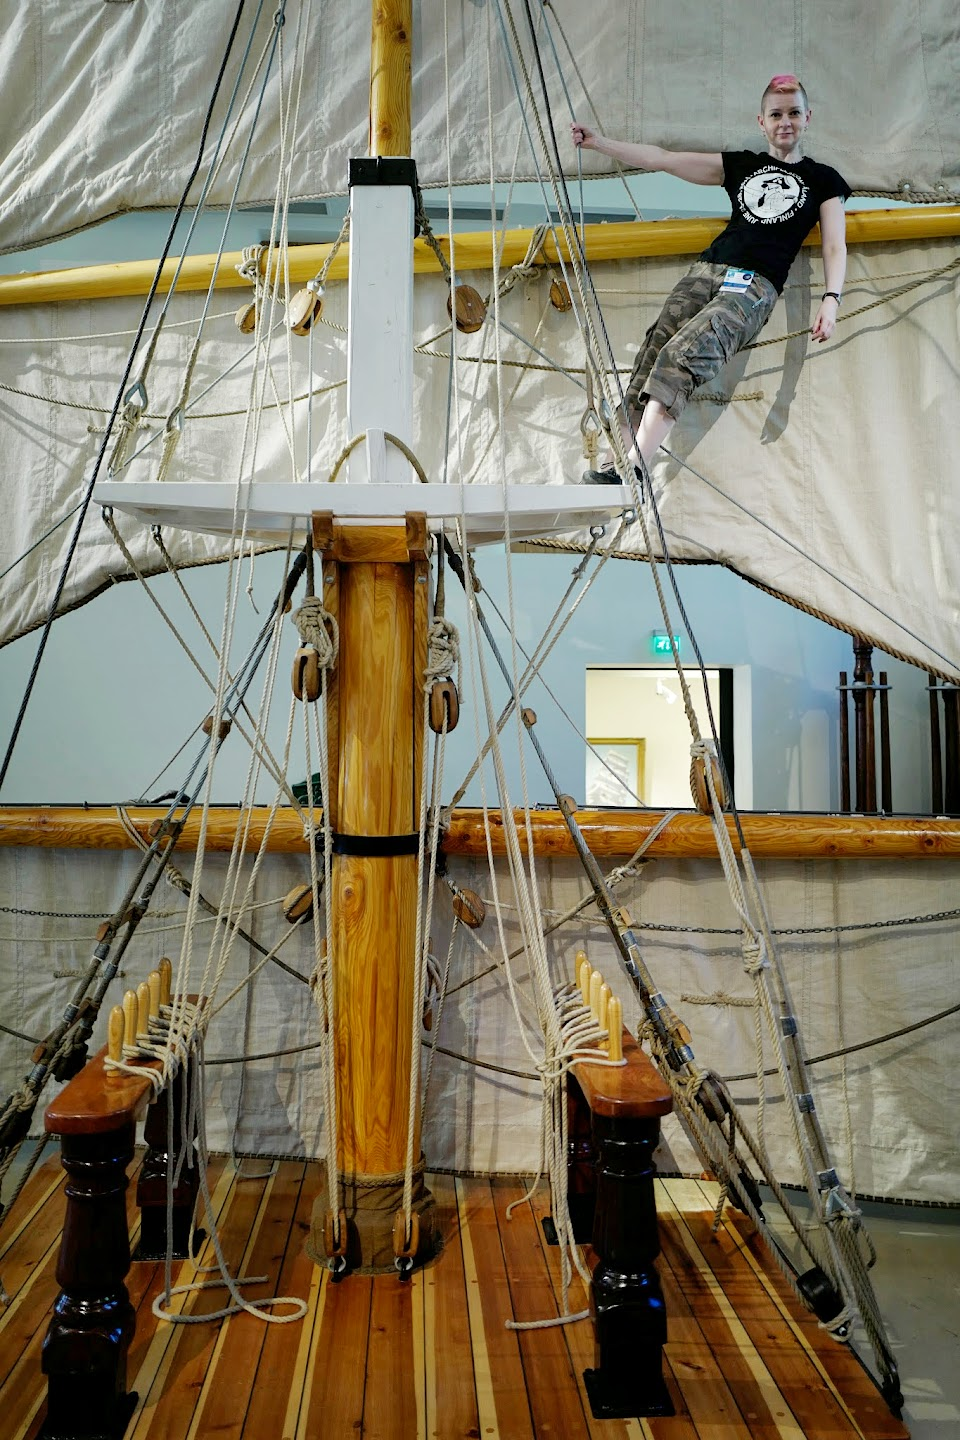 2015-06-28-goh-visit-to-aland-maritime-museum-and-pommern - L1020614.jpg